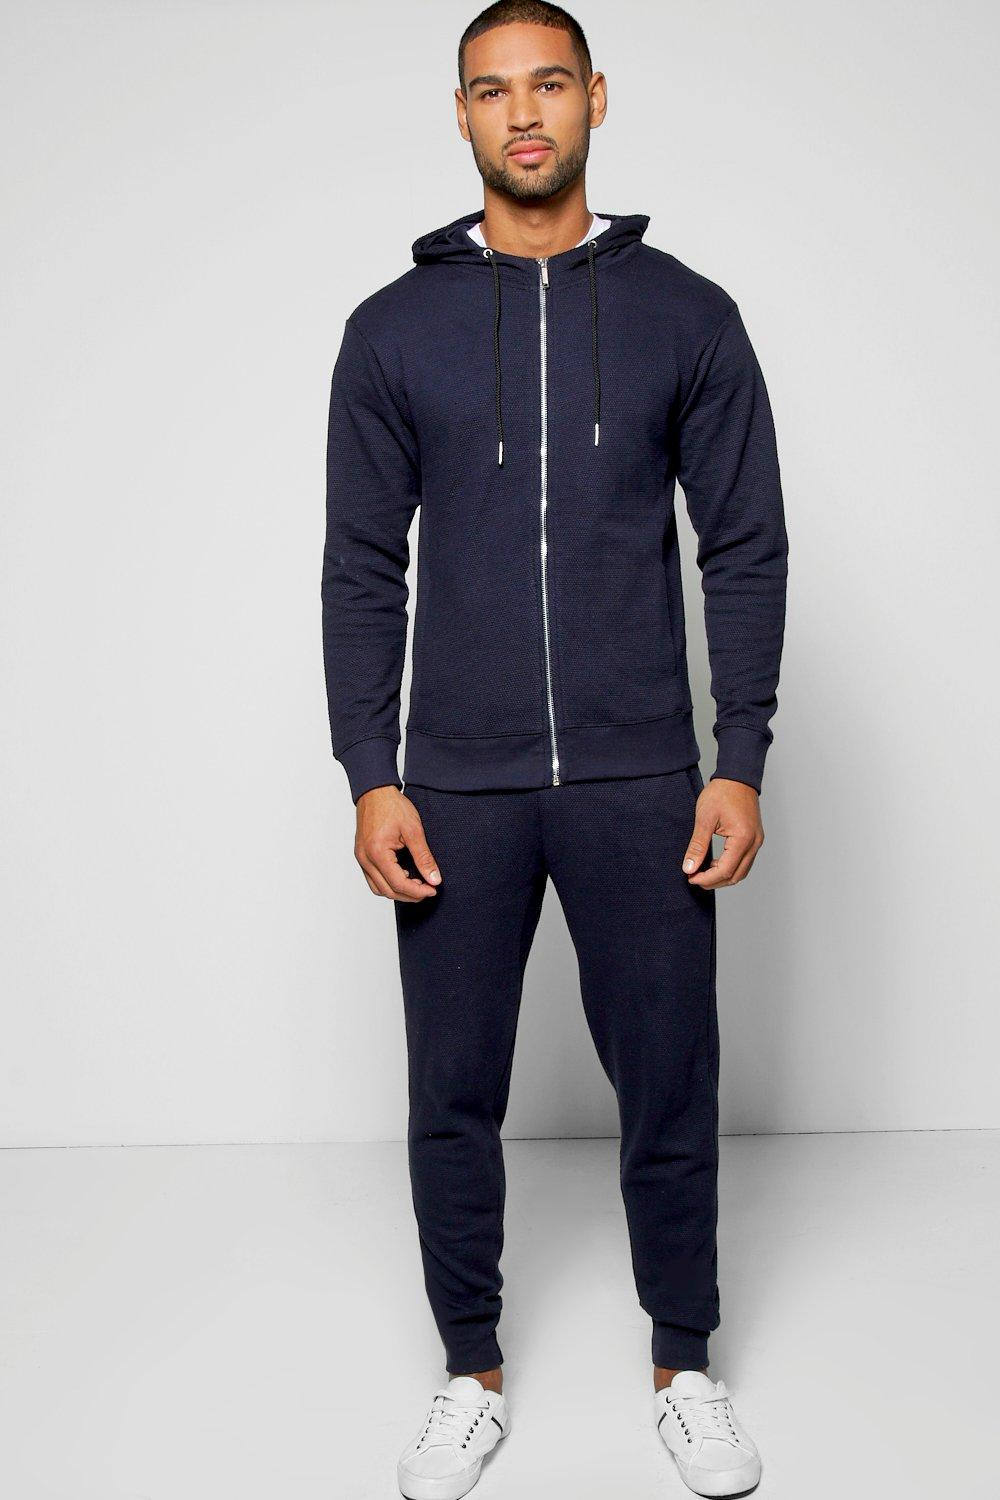 Find great deals on eBay for mens cotton tracksuit. Shop with confidence.